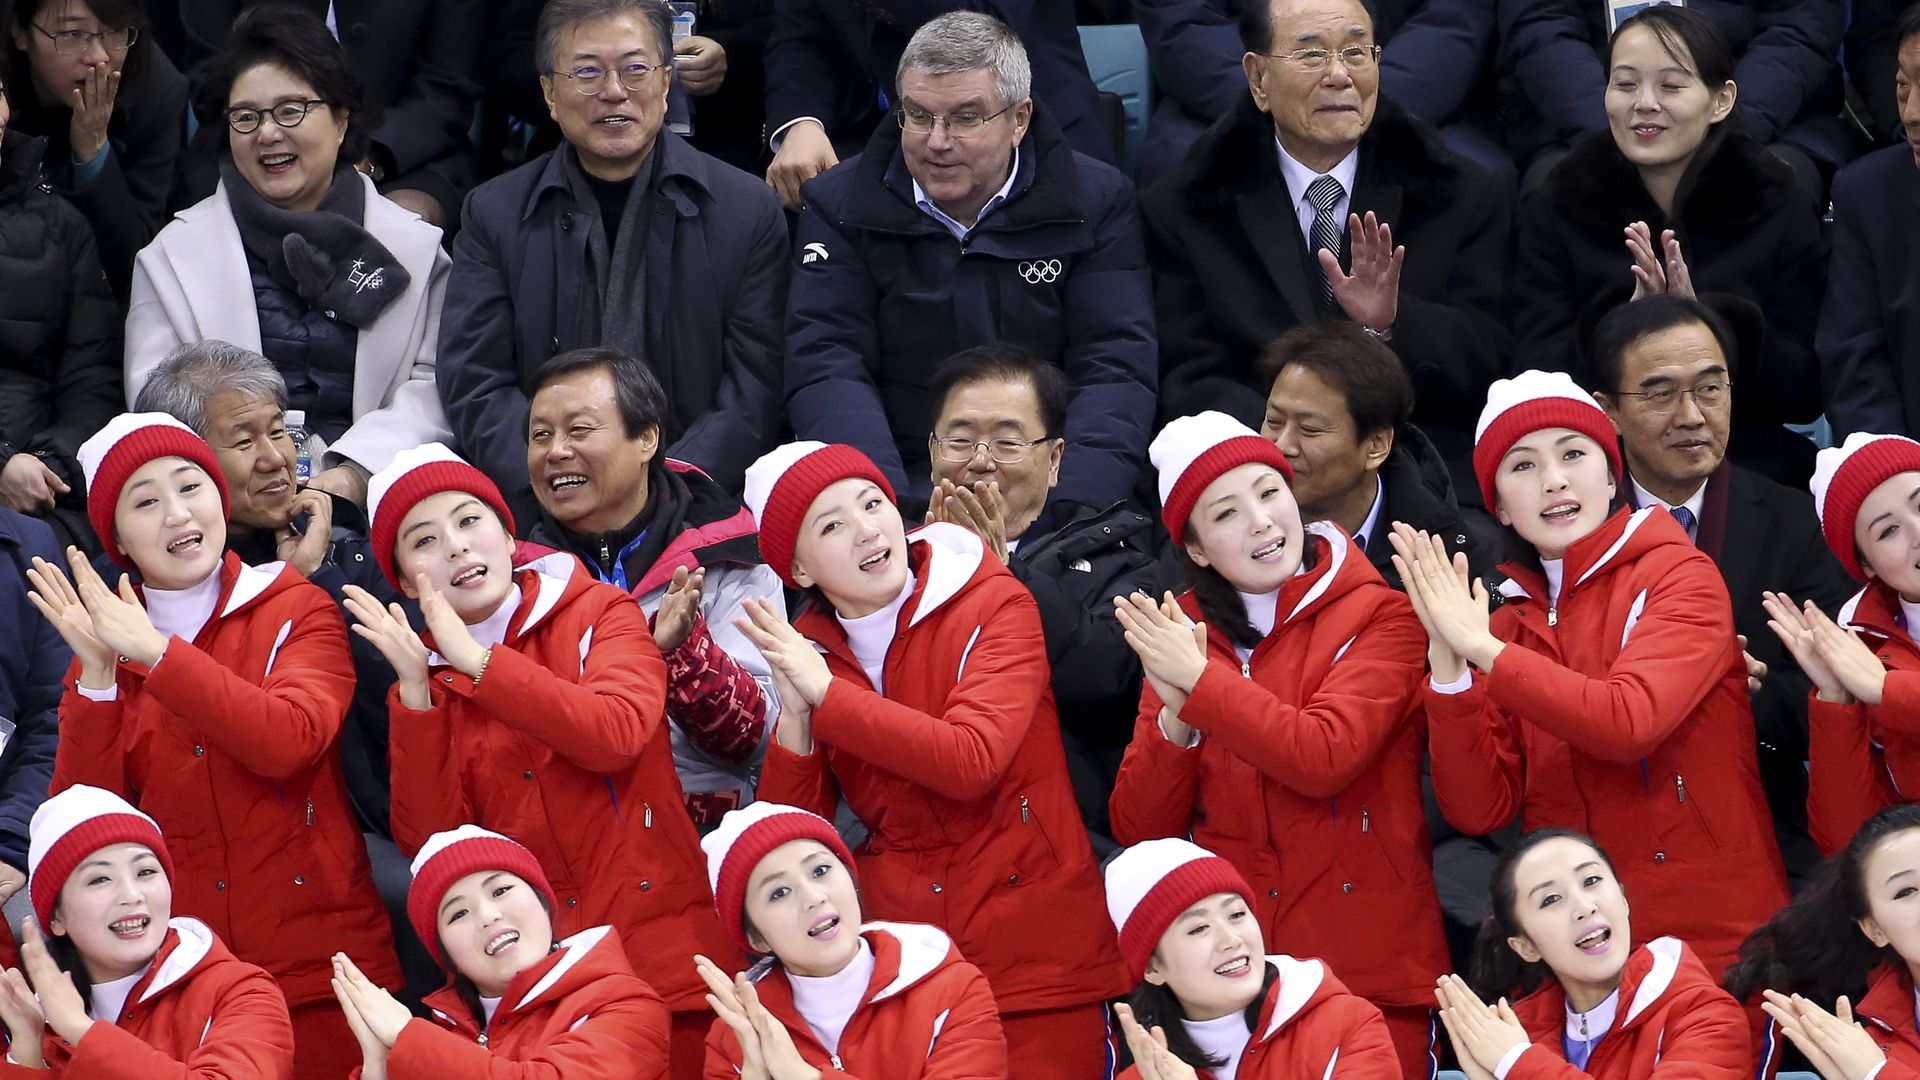 North Korean cheering squad